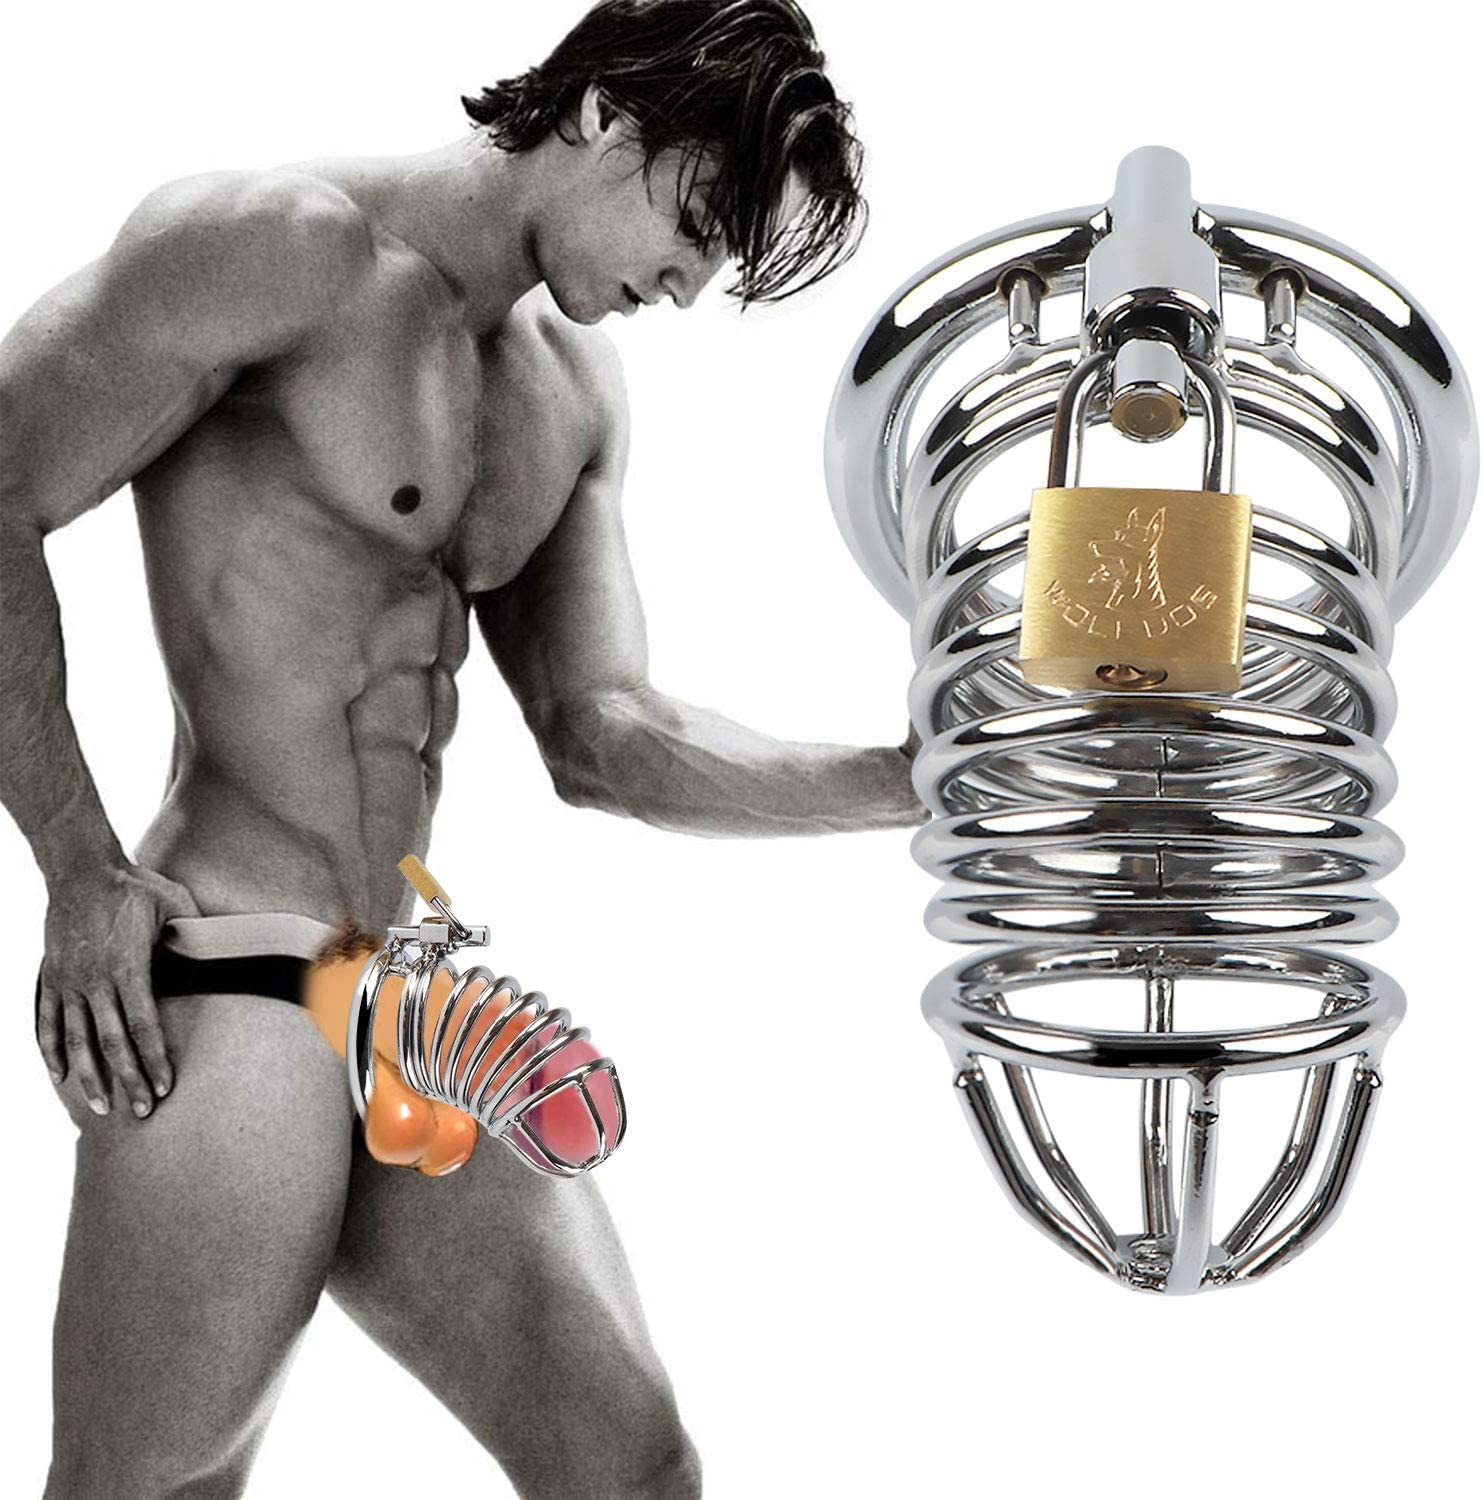 4.5 Inch Waterproof Sturdy Metal Steel Body Play Soft Products for Men